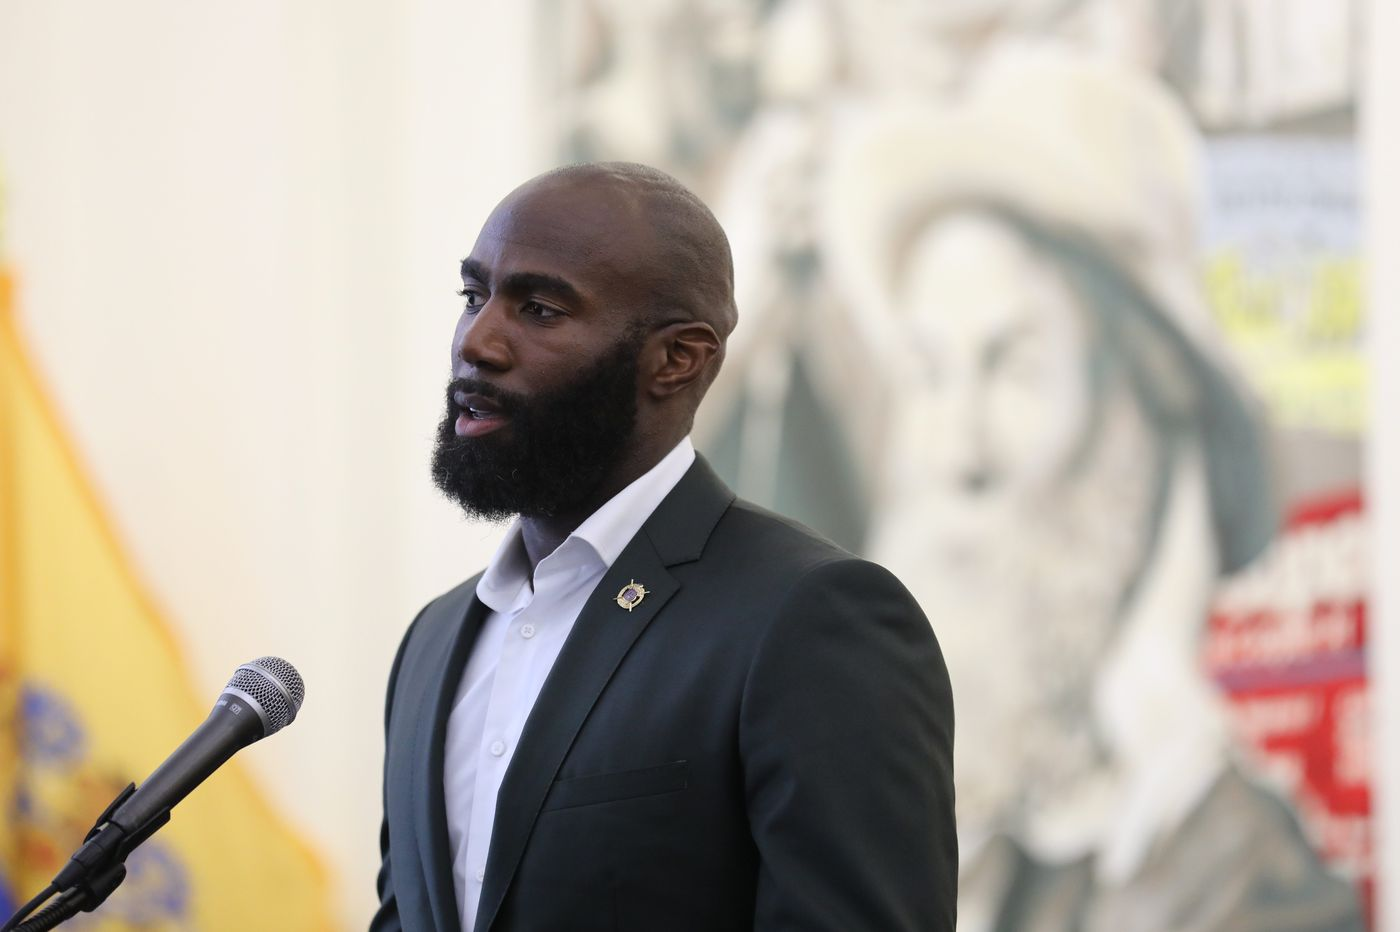 Eagles safety Malcolm Jenkins receives key to city of Camden